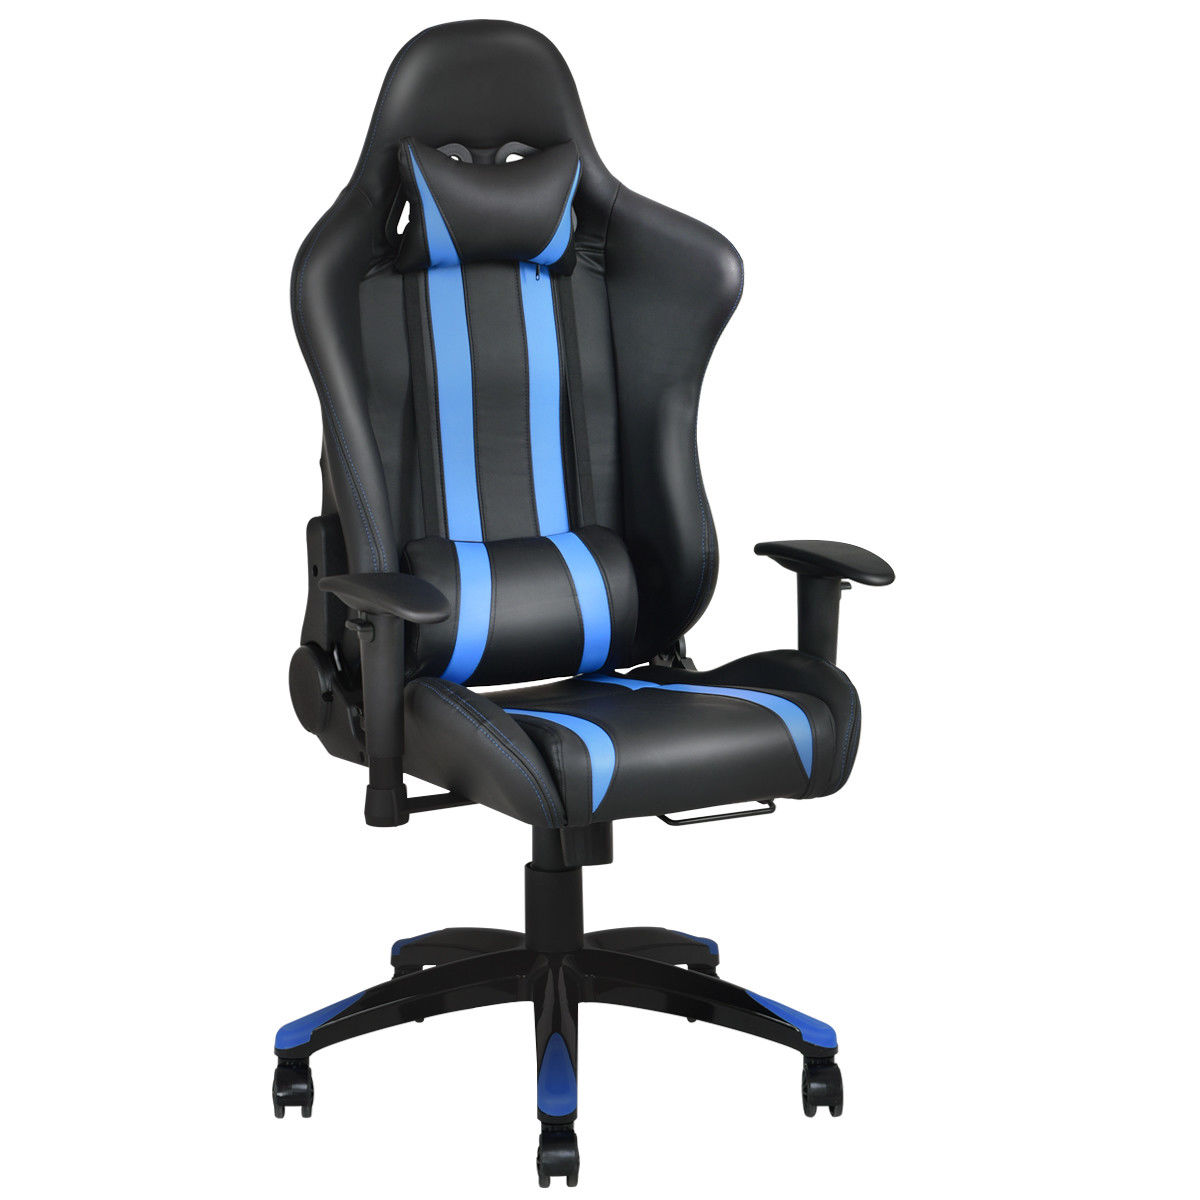 Us 137 99 Giantex Modern Office Chair Racing High Back Reclining Gaming Ergonomic Computer Desk Furniture Hw53993bl In